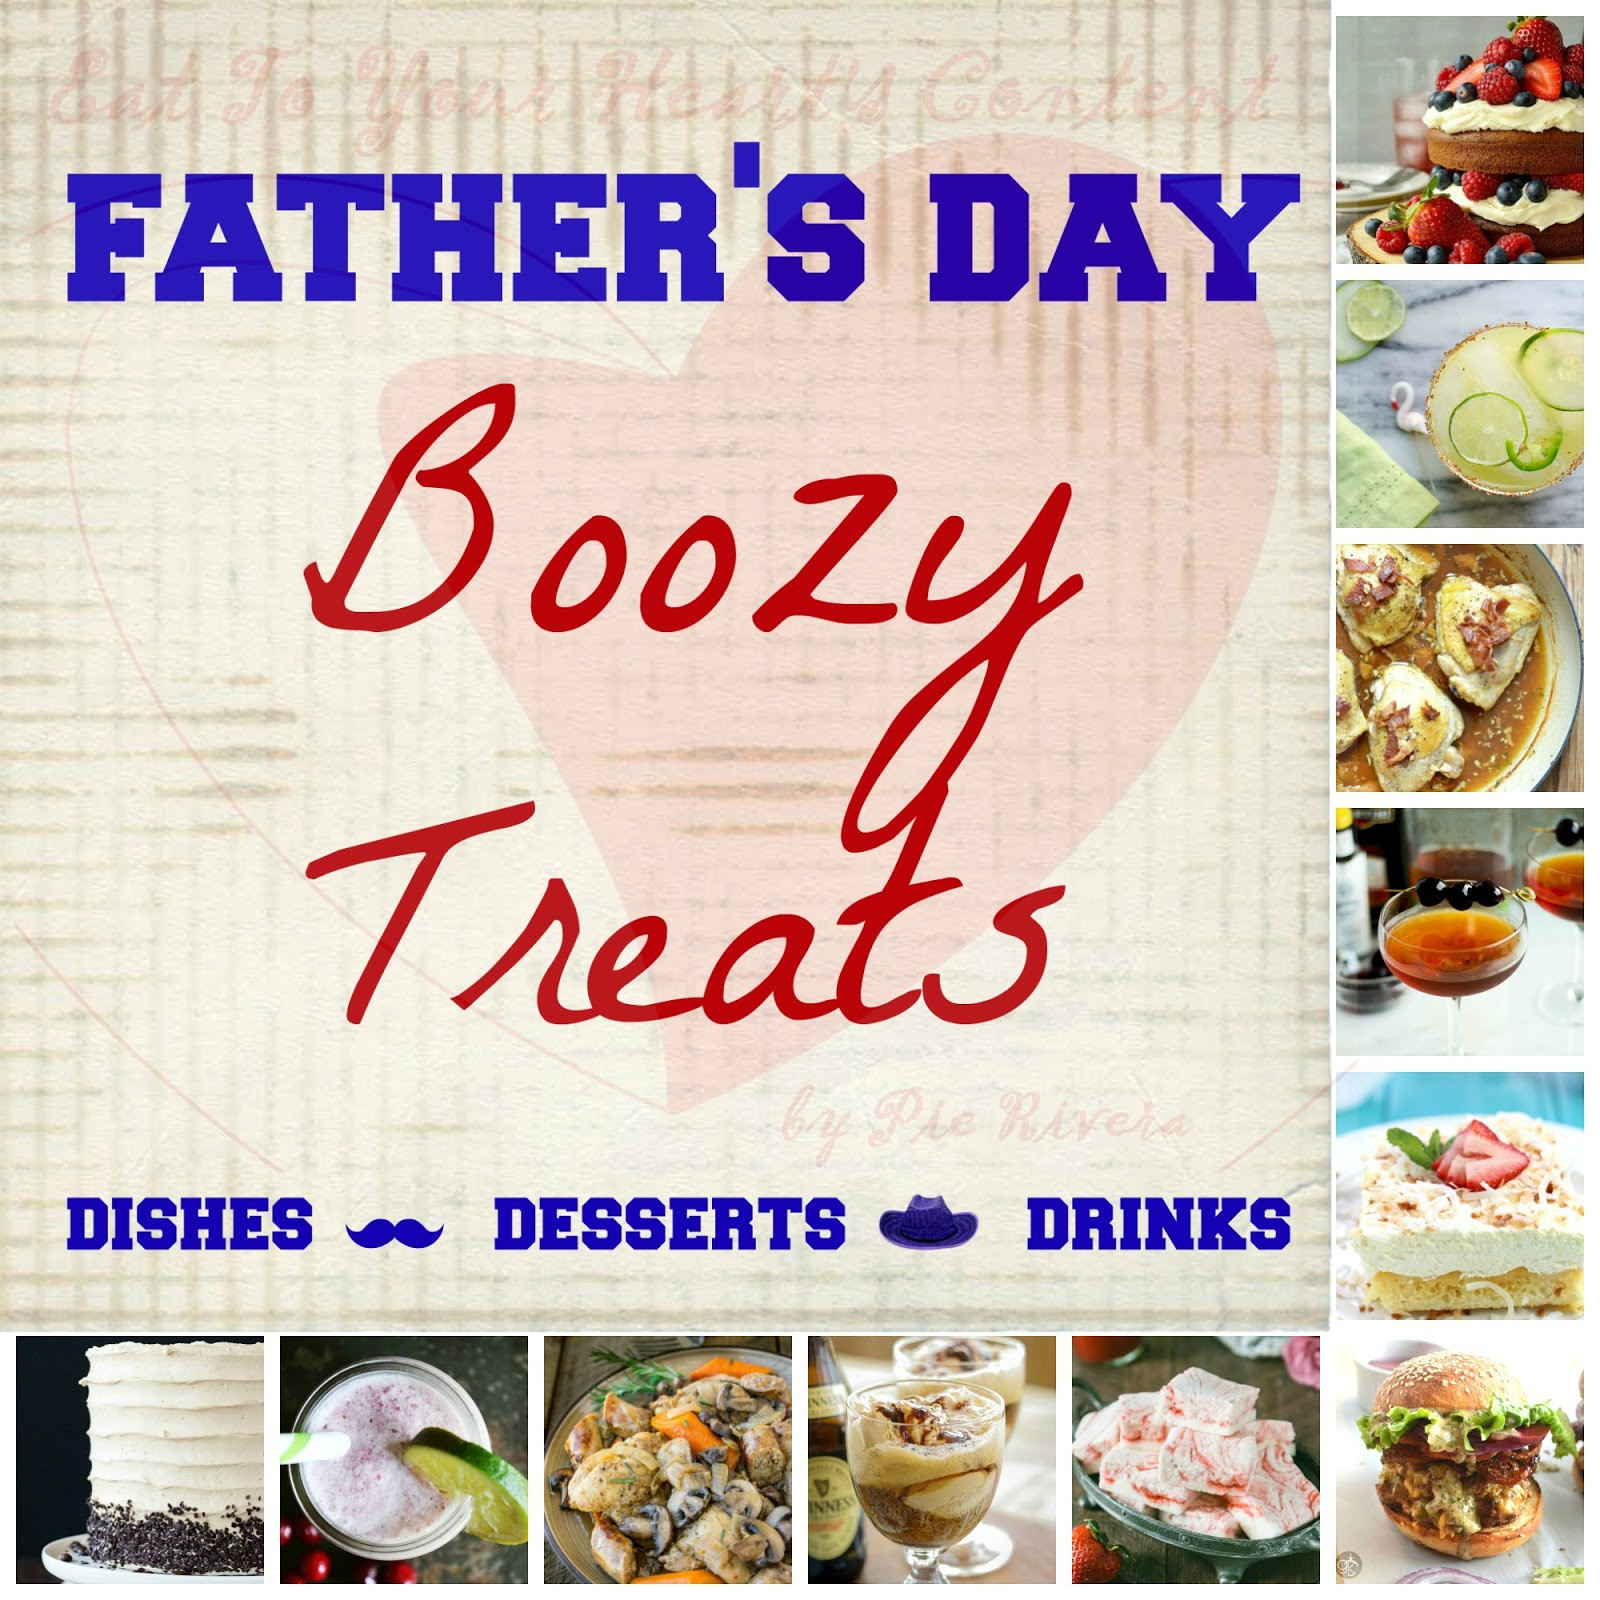 Fathers Day Desserts  Eat To Your Heart s Content Deliriously Delicious Dining